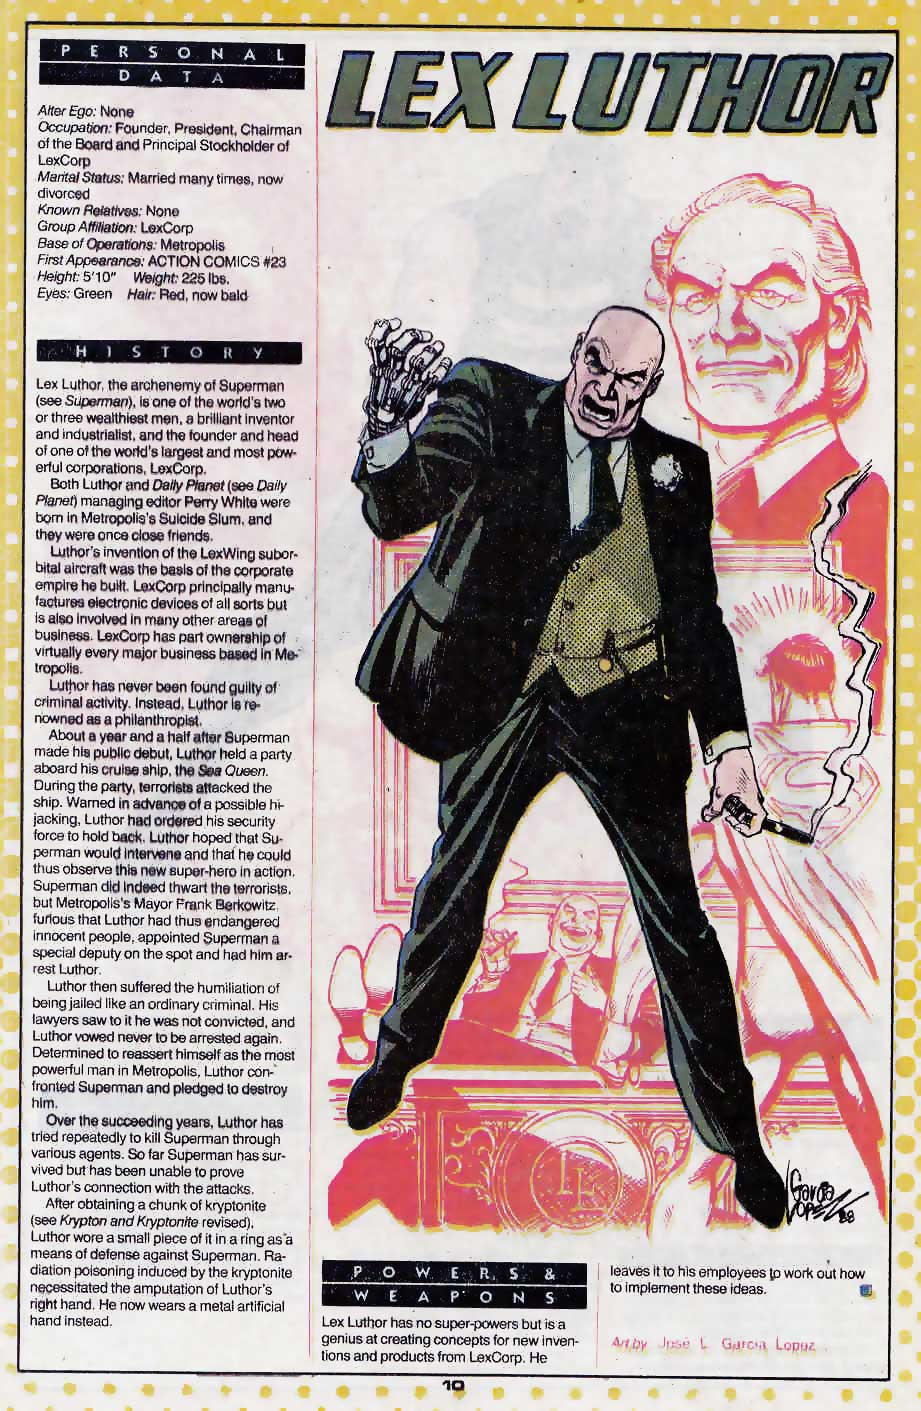 Who's Who Update 88 #2 Lex Luthor by Jose Luis Garcia Lopez (Praise Be His Name)